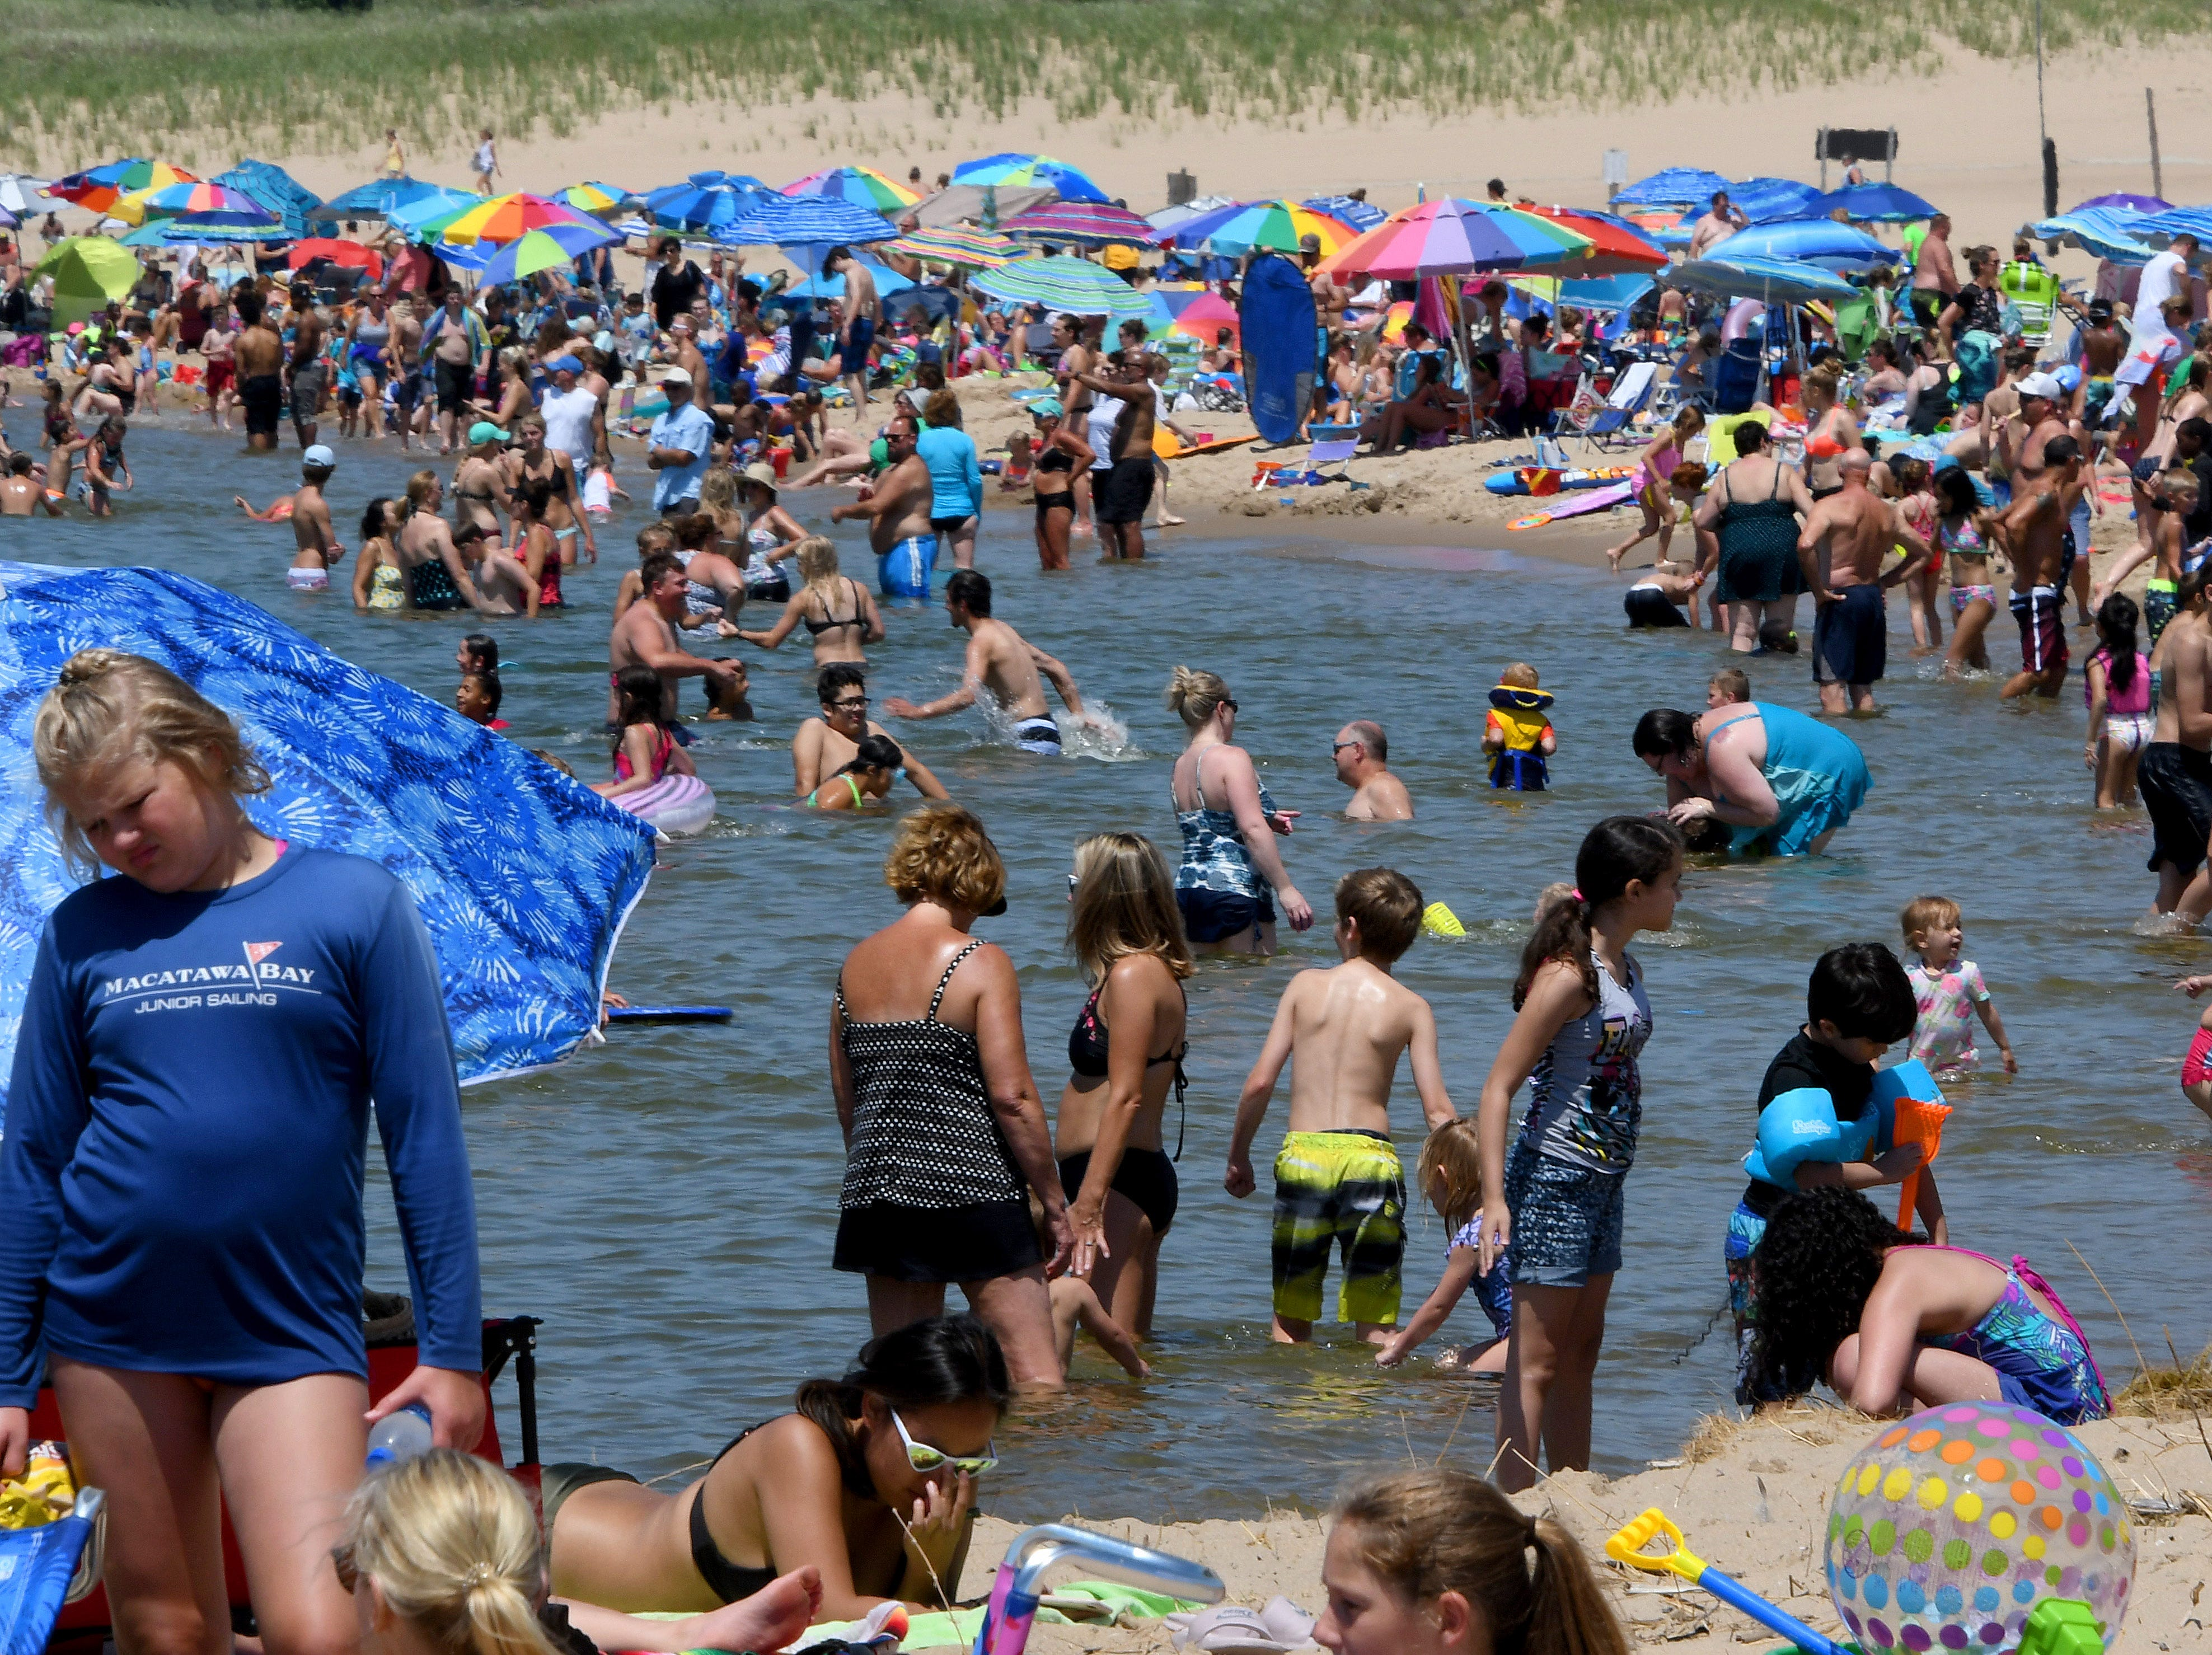 Crowds flock to Ottawa Beach, part of Holland State Park, on Lake Michigan on Friday, June 29, 2018.  Also shots of boats in the channel with the Holland Light in the background.   (Dale G.Young/Detroit News) 2018.